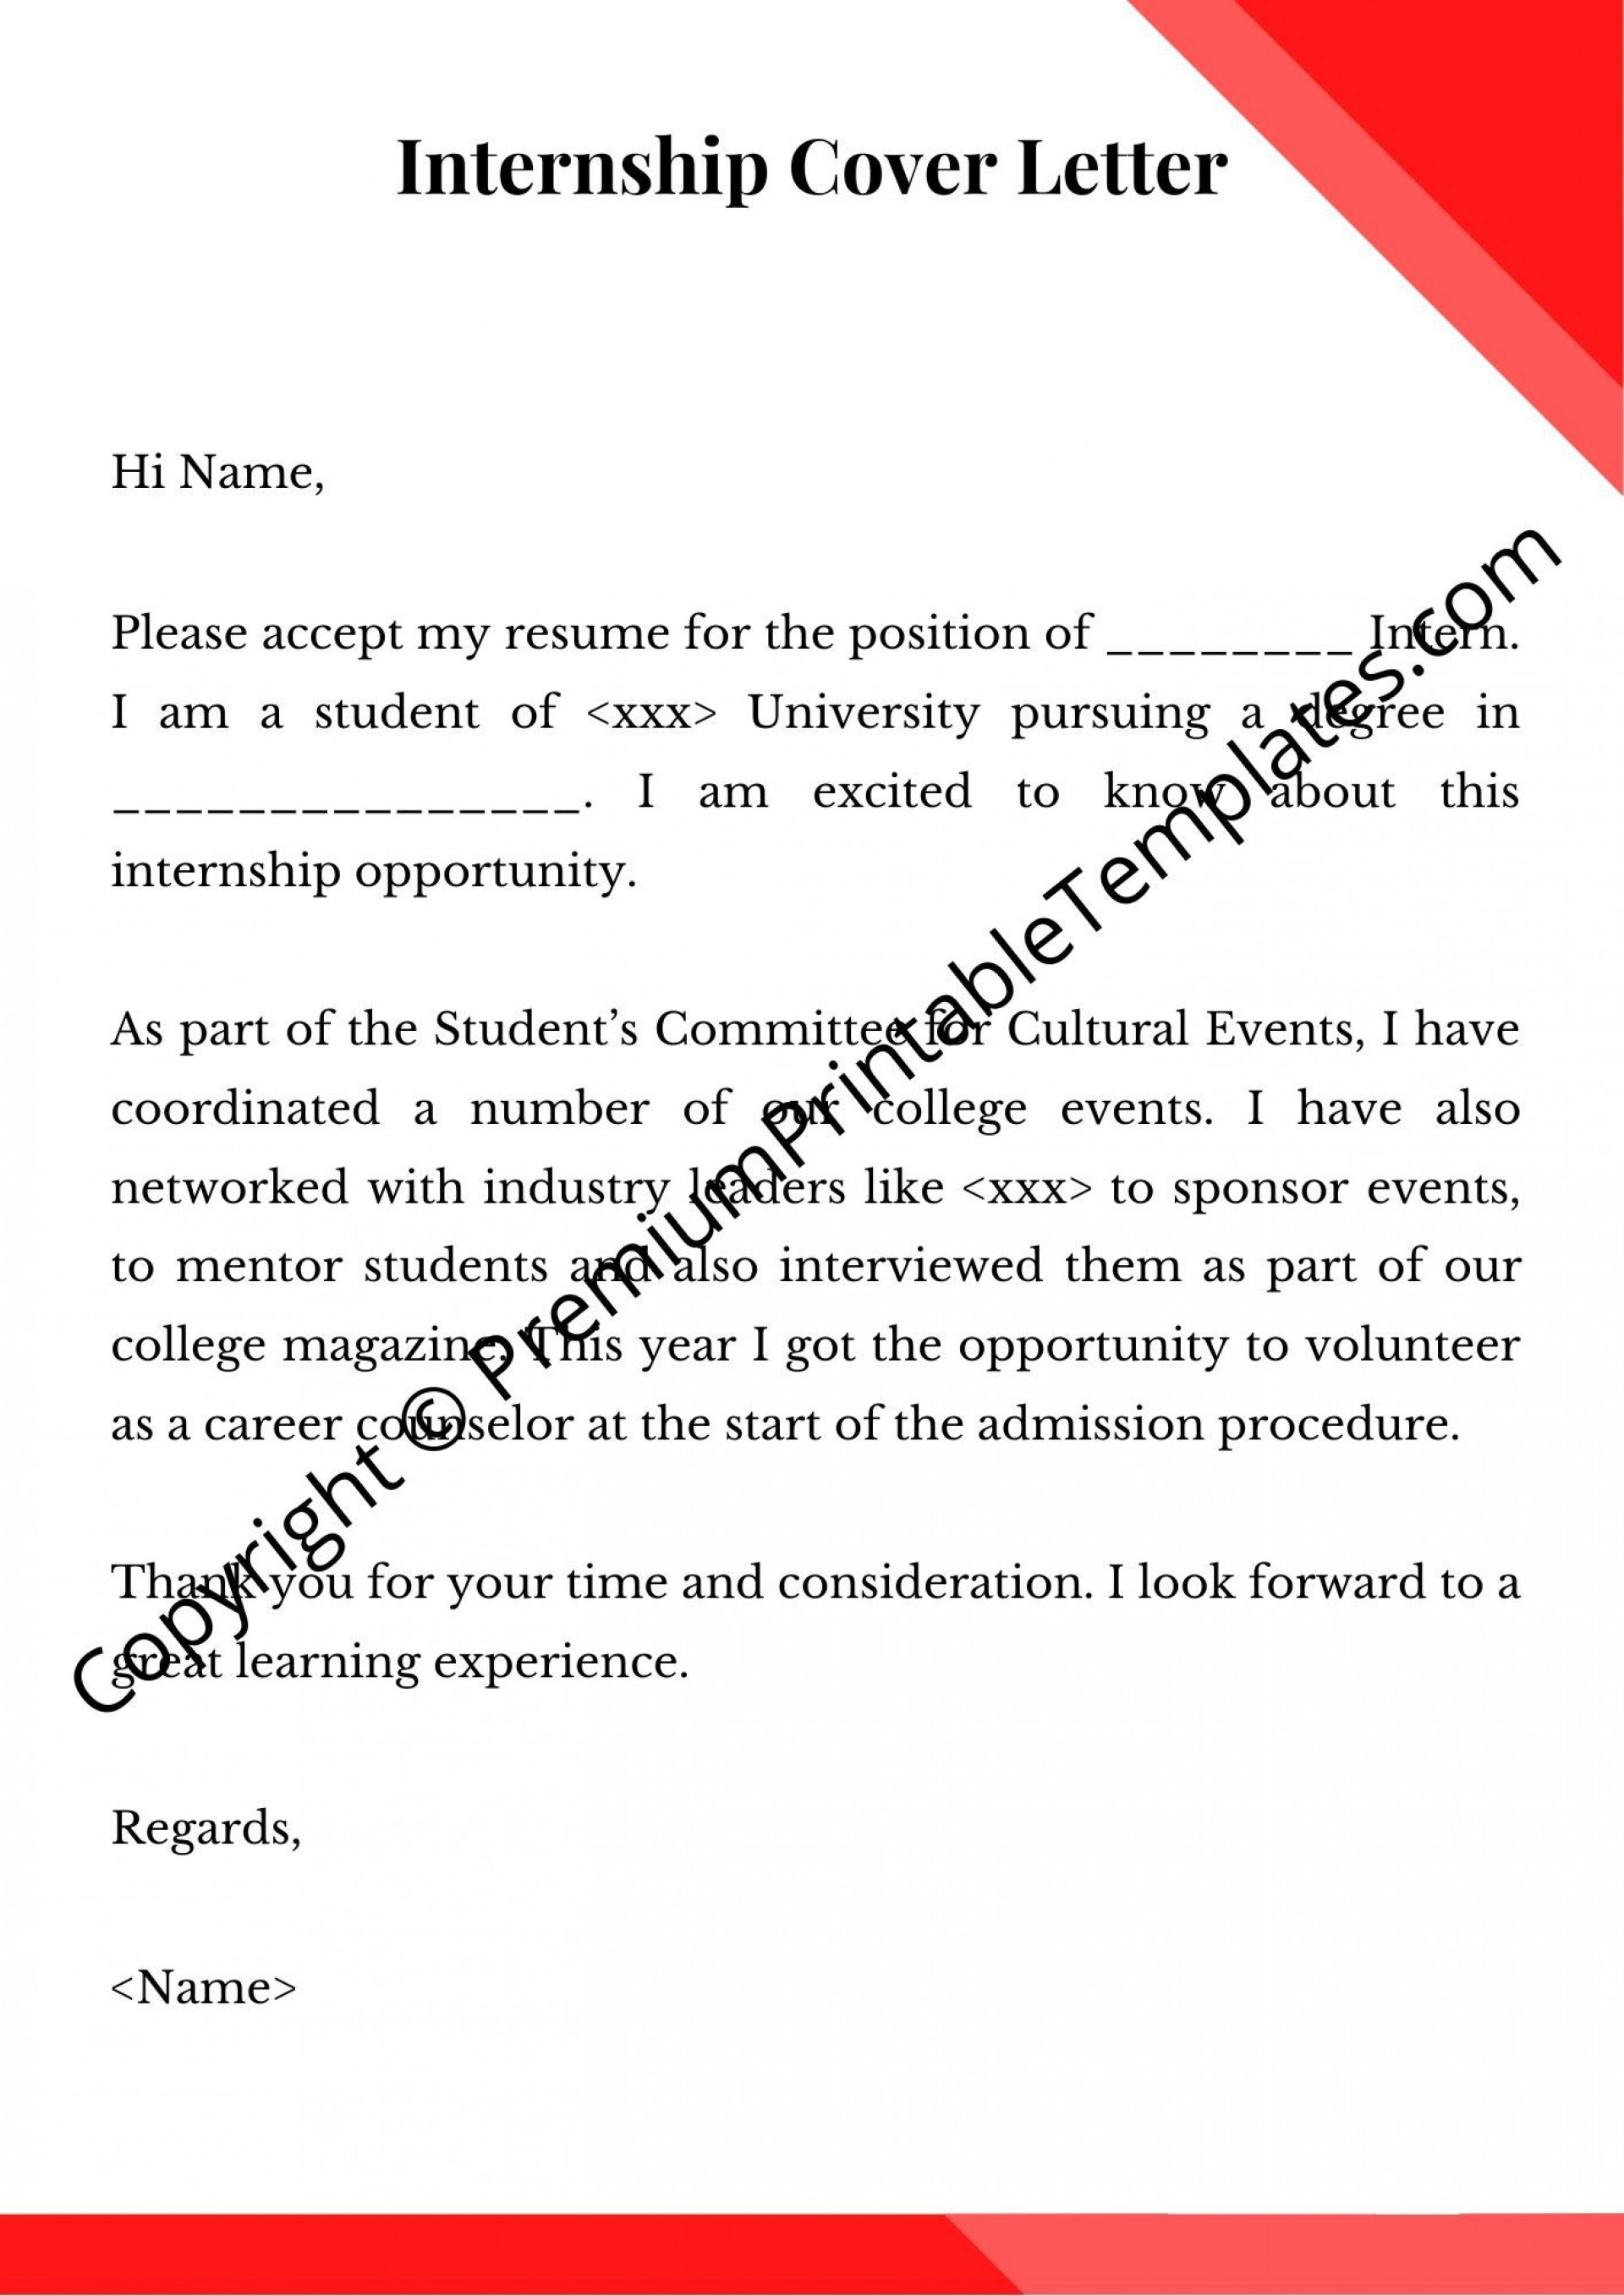 001 Impressive Cover Letter For Internship Template Inspiration  Free Engineering Example Summer1920